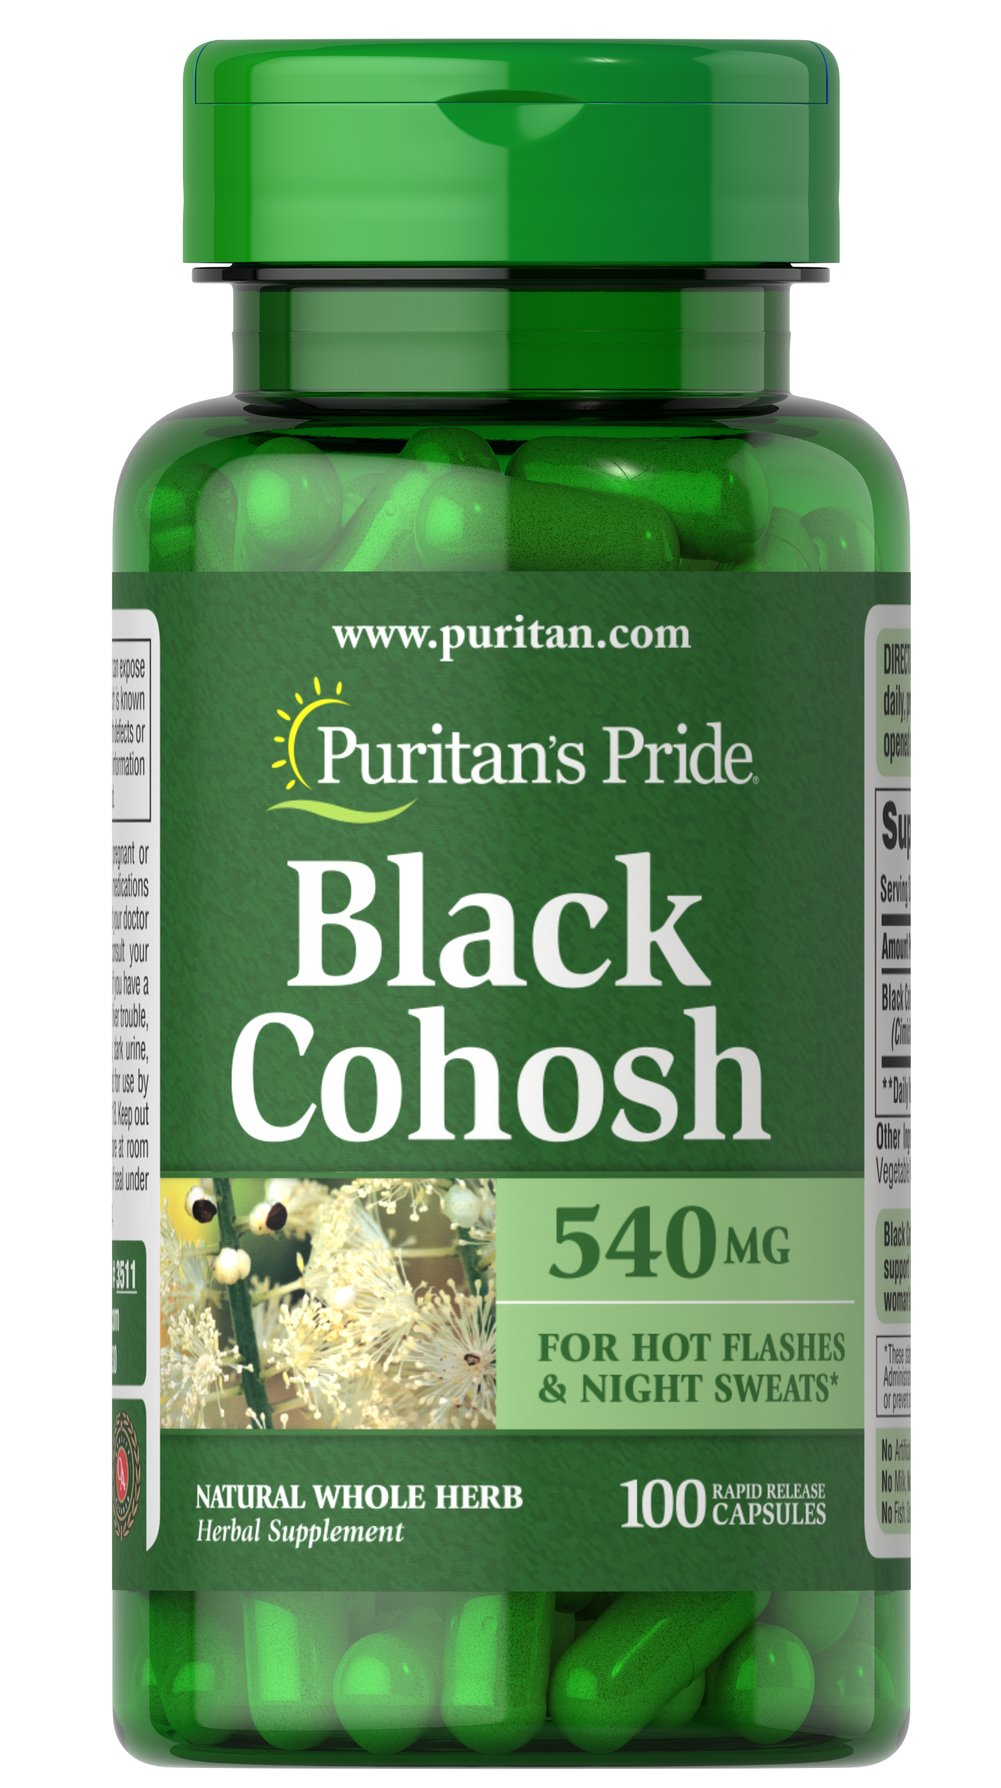 Black Cohosh 540 mg <p>Supports Menopausal Health**</p><p> As one of the leading herbs for women's health, Black Cohosh is famous for its ability to promote menopausal health.** Black Cohosh helps support the physical changes that occur in a woman's body over time.**</p><p></p> 100 Capsules 540 mg $12.99